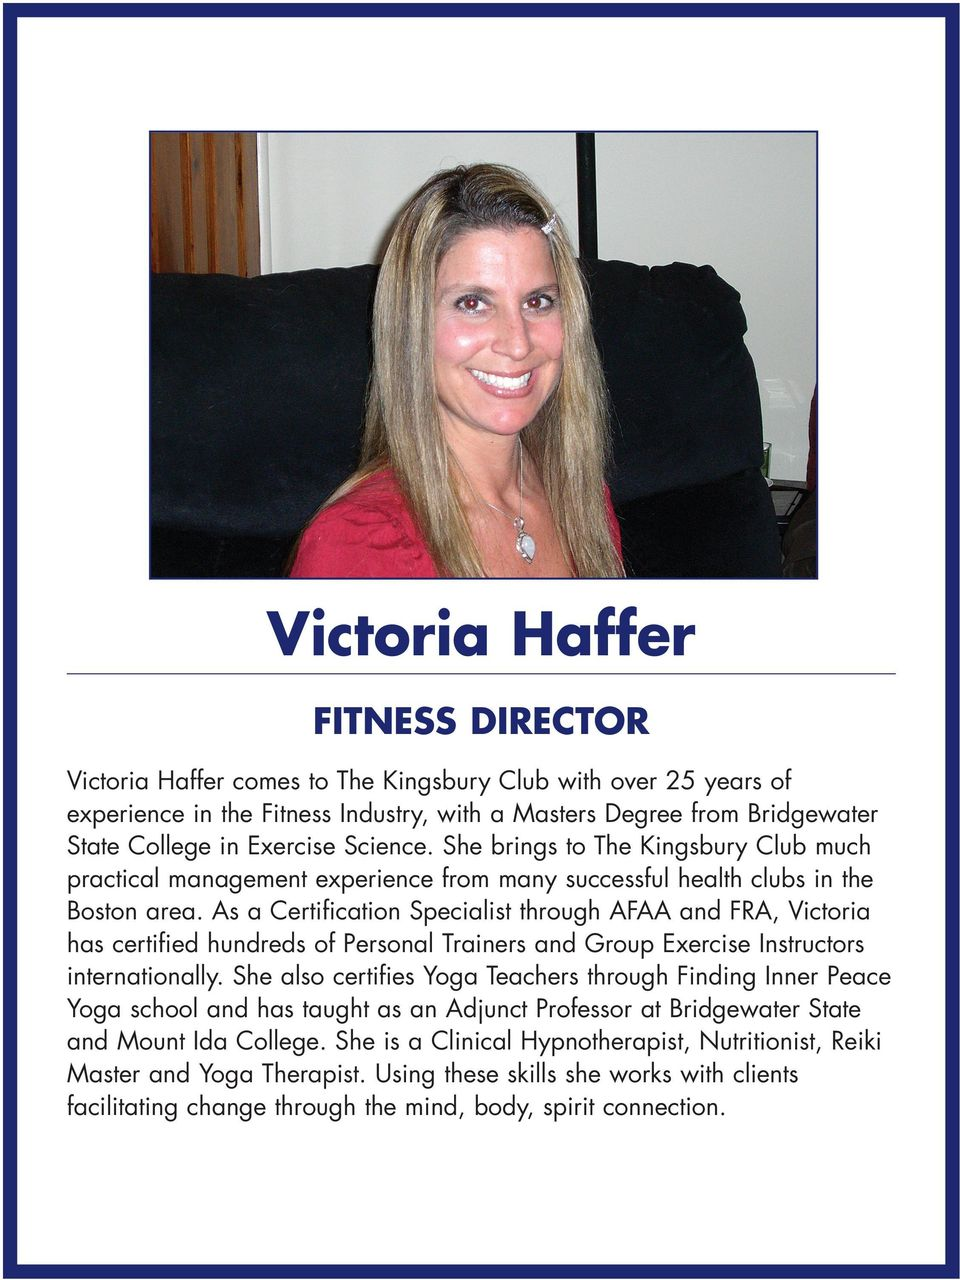 As a Certification Specialist through AFAA and FRA, Victoria has certified hundreds of Personal Trainers and Group Exercise Instructors internationally.